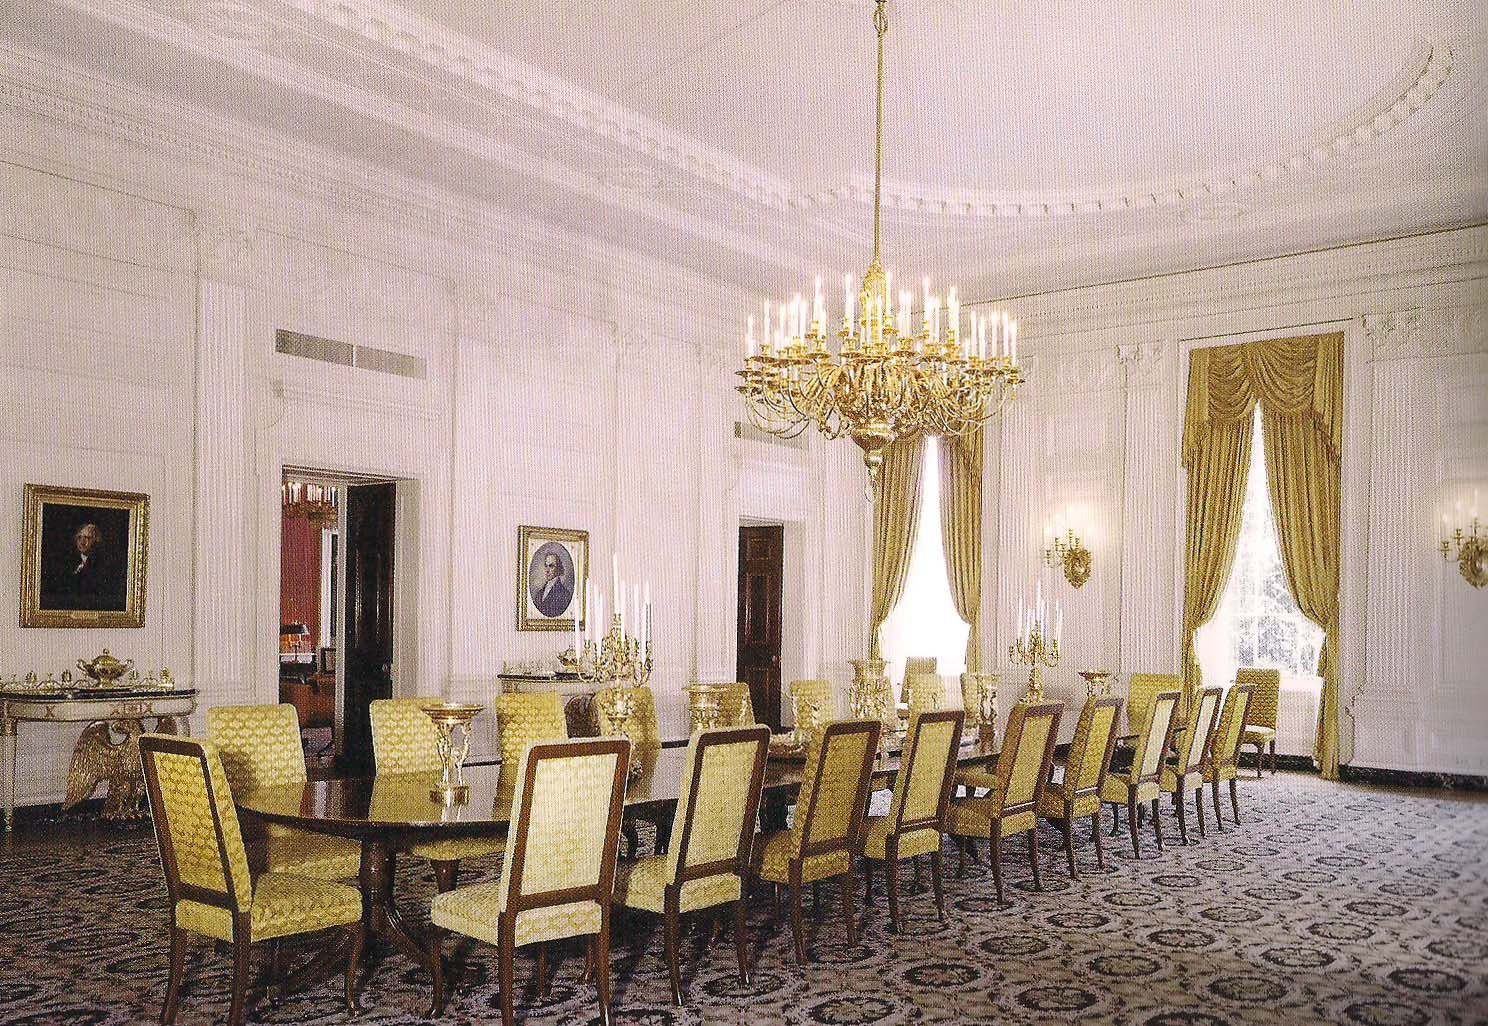 The state dining room of the white house as decorated by stephane boudin of jansen